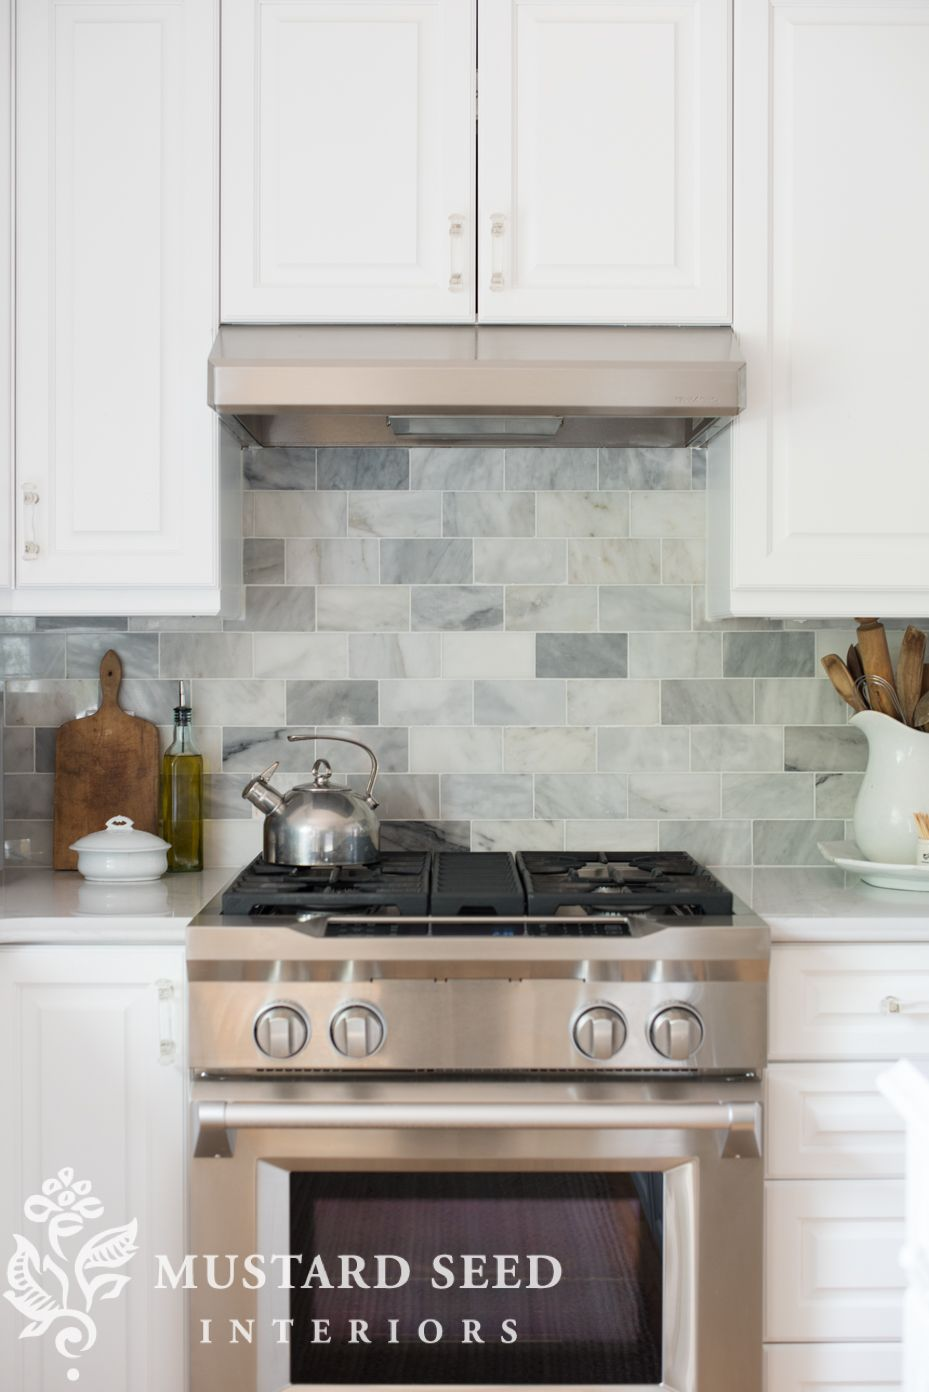 pin by catherine leiloglou on kitchen ideas kitchen backsplash rh pinterest com